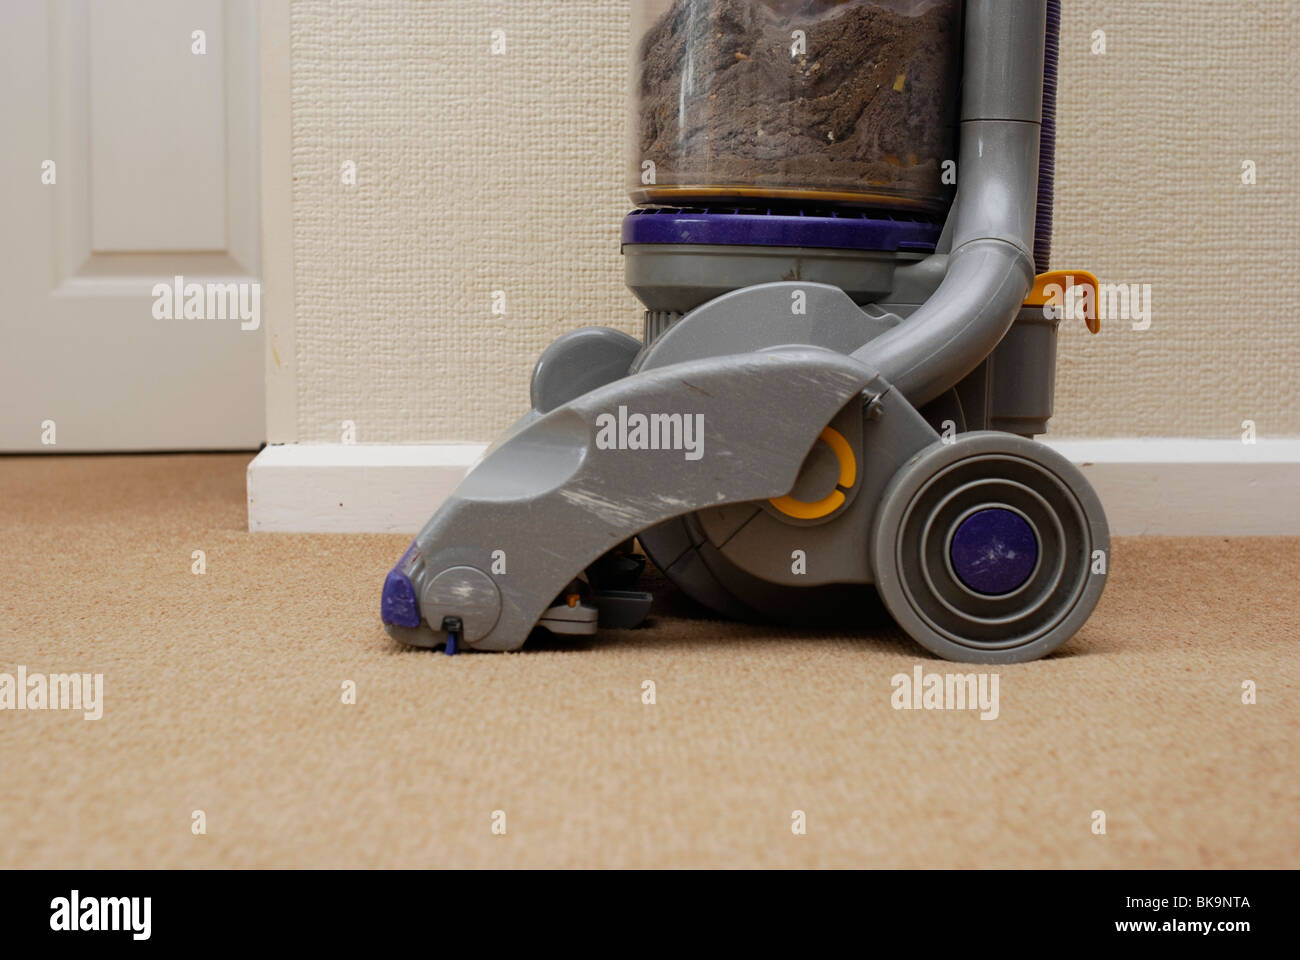 dyson vacuum cleaner on lounge carpet with dust and dirt visible inside cleaner stock - Dyson Vacuum Cleaner